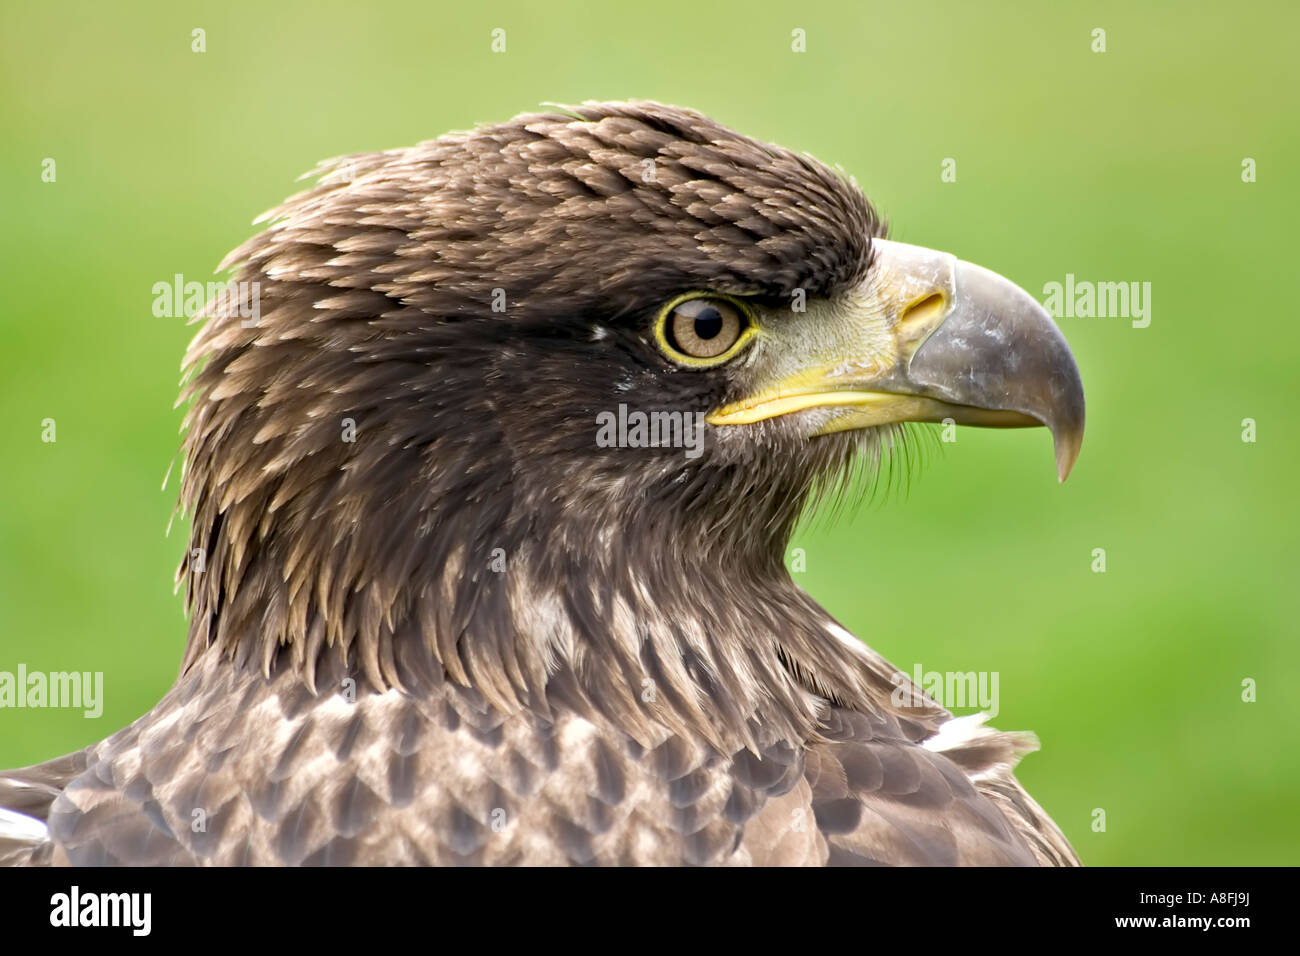 The Stare of an Eagle - Stock Image